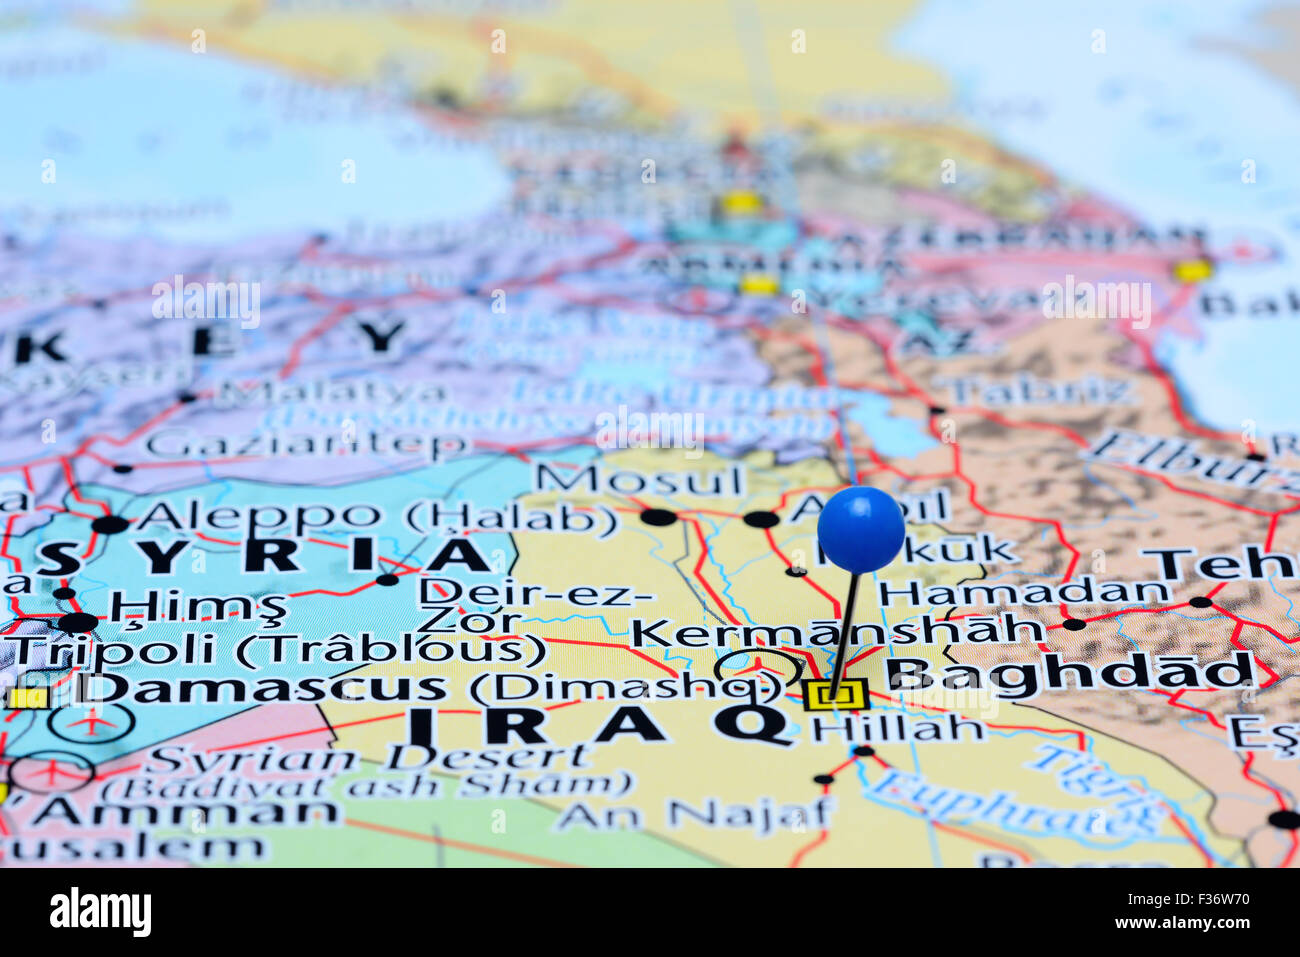 Baghdad pinned on a map of Asia Stock Photo: 88047316 - Alamy